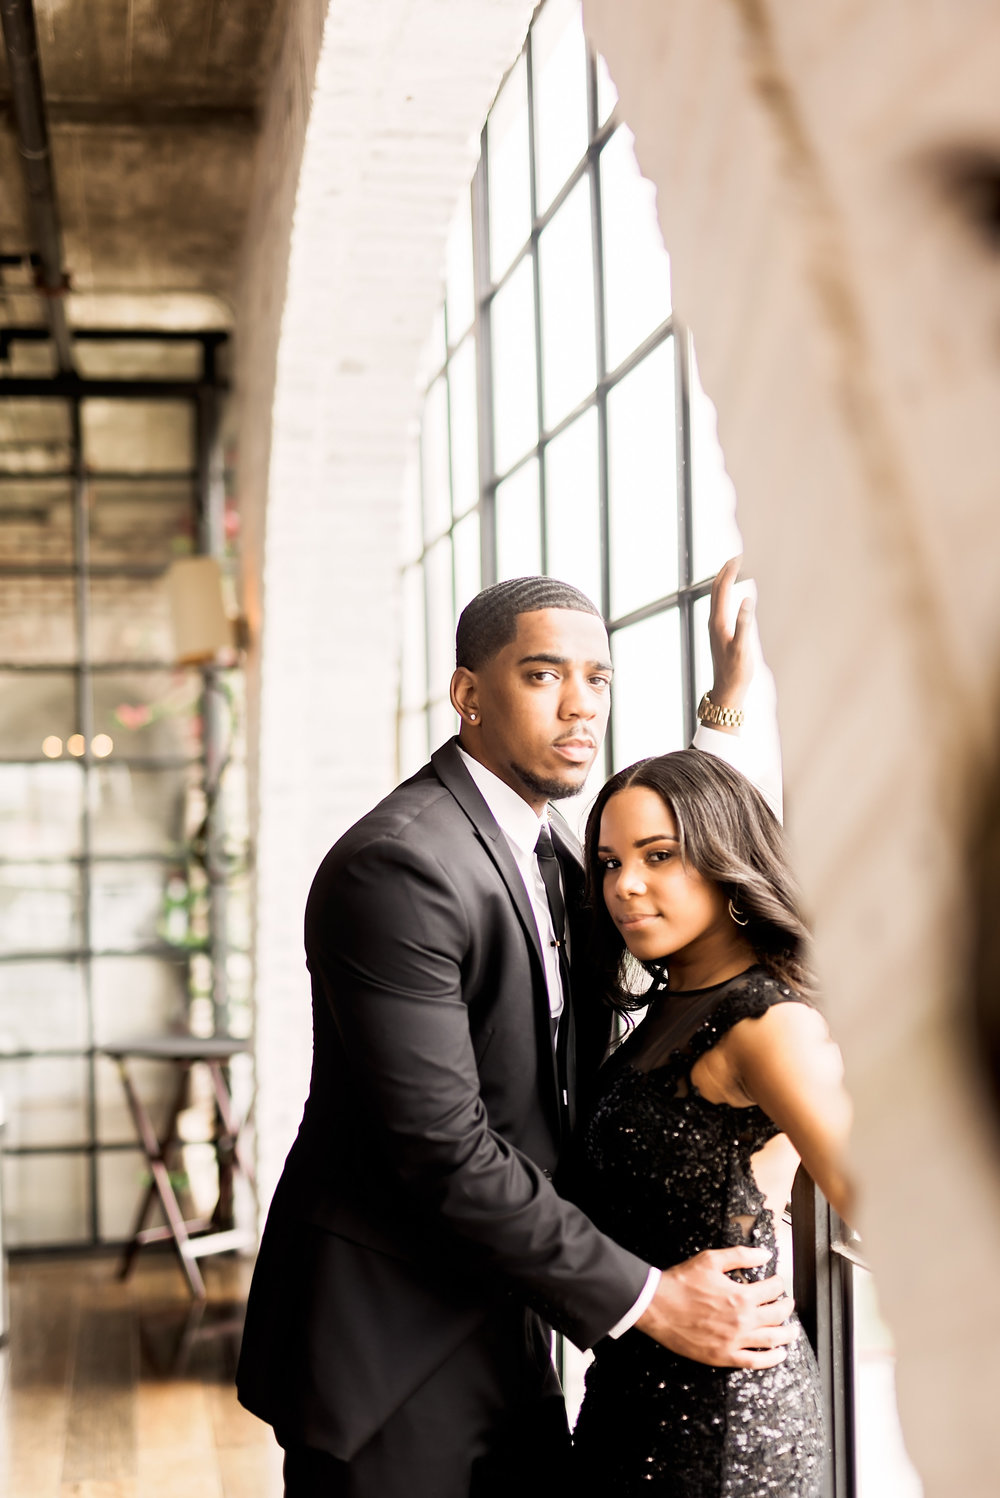 Ashley-David-Engagement-Pharris-Photography-63.jpg